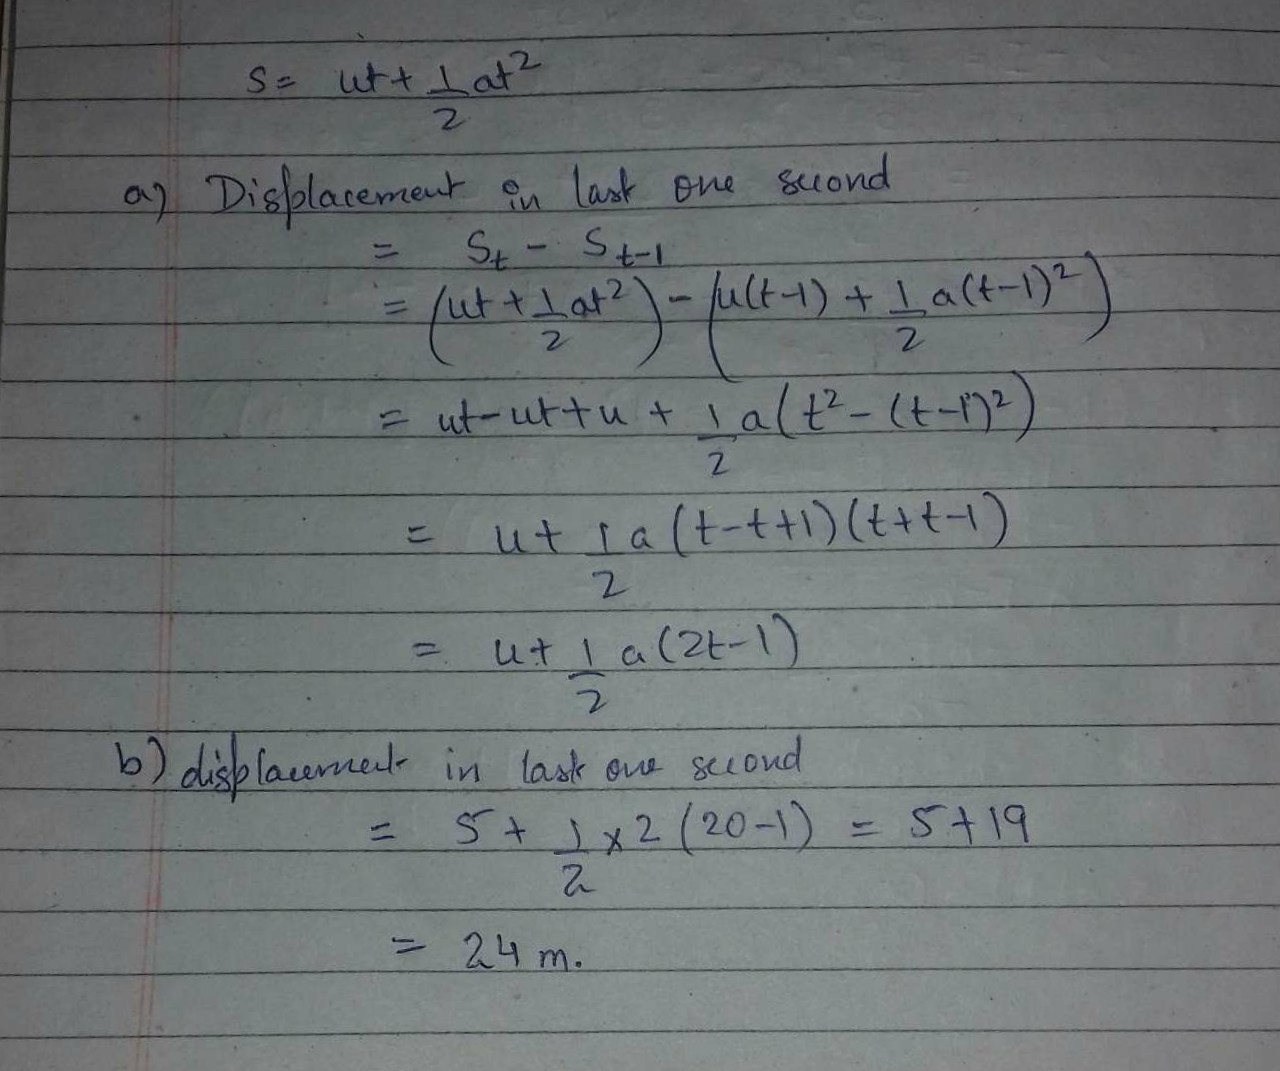 A particle having initial velocity u moves with a constant acceleration a for a time t. (a) Find the displacement of the particle in the last 1 second. (b) Evaluate it for u≡5m/s,a=2m/s2 and t≡10s